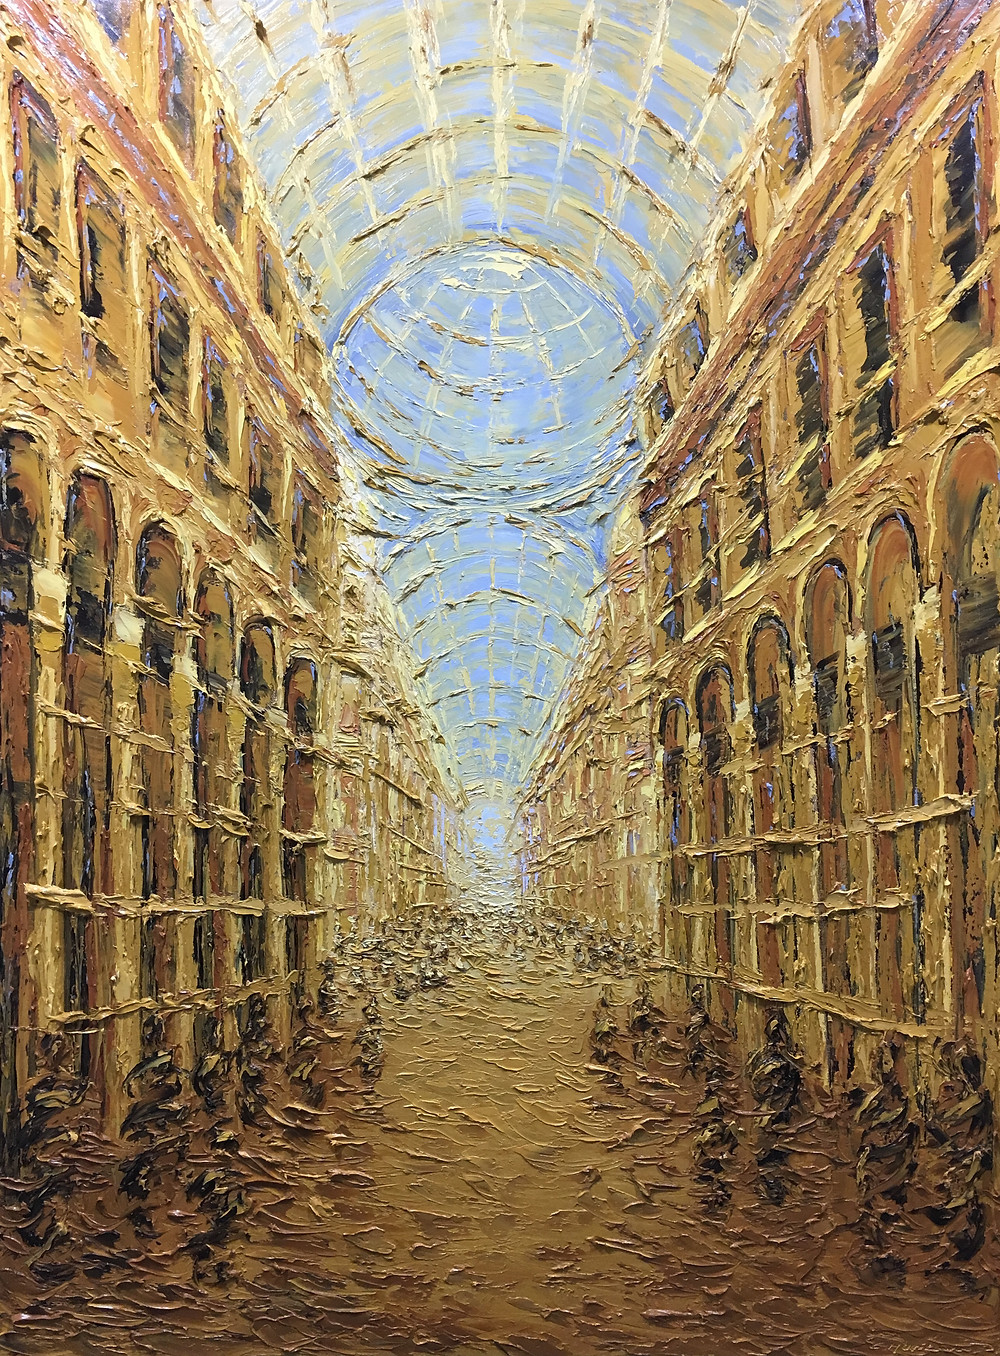 Golden Galleria  Oil on canvas 2018 40 x 30 x 1.7 in. From the Galleria series, based on impressions of the galleria Vittorio Emmanuelle in Milan, Italy. Cities, public spaces, architecture, people.